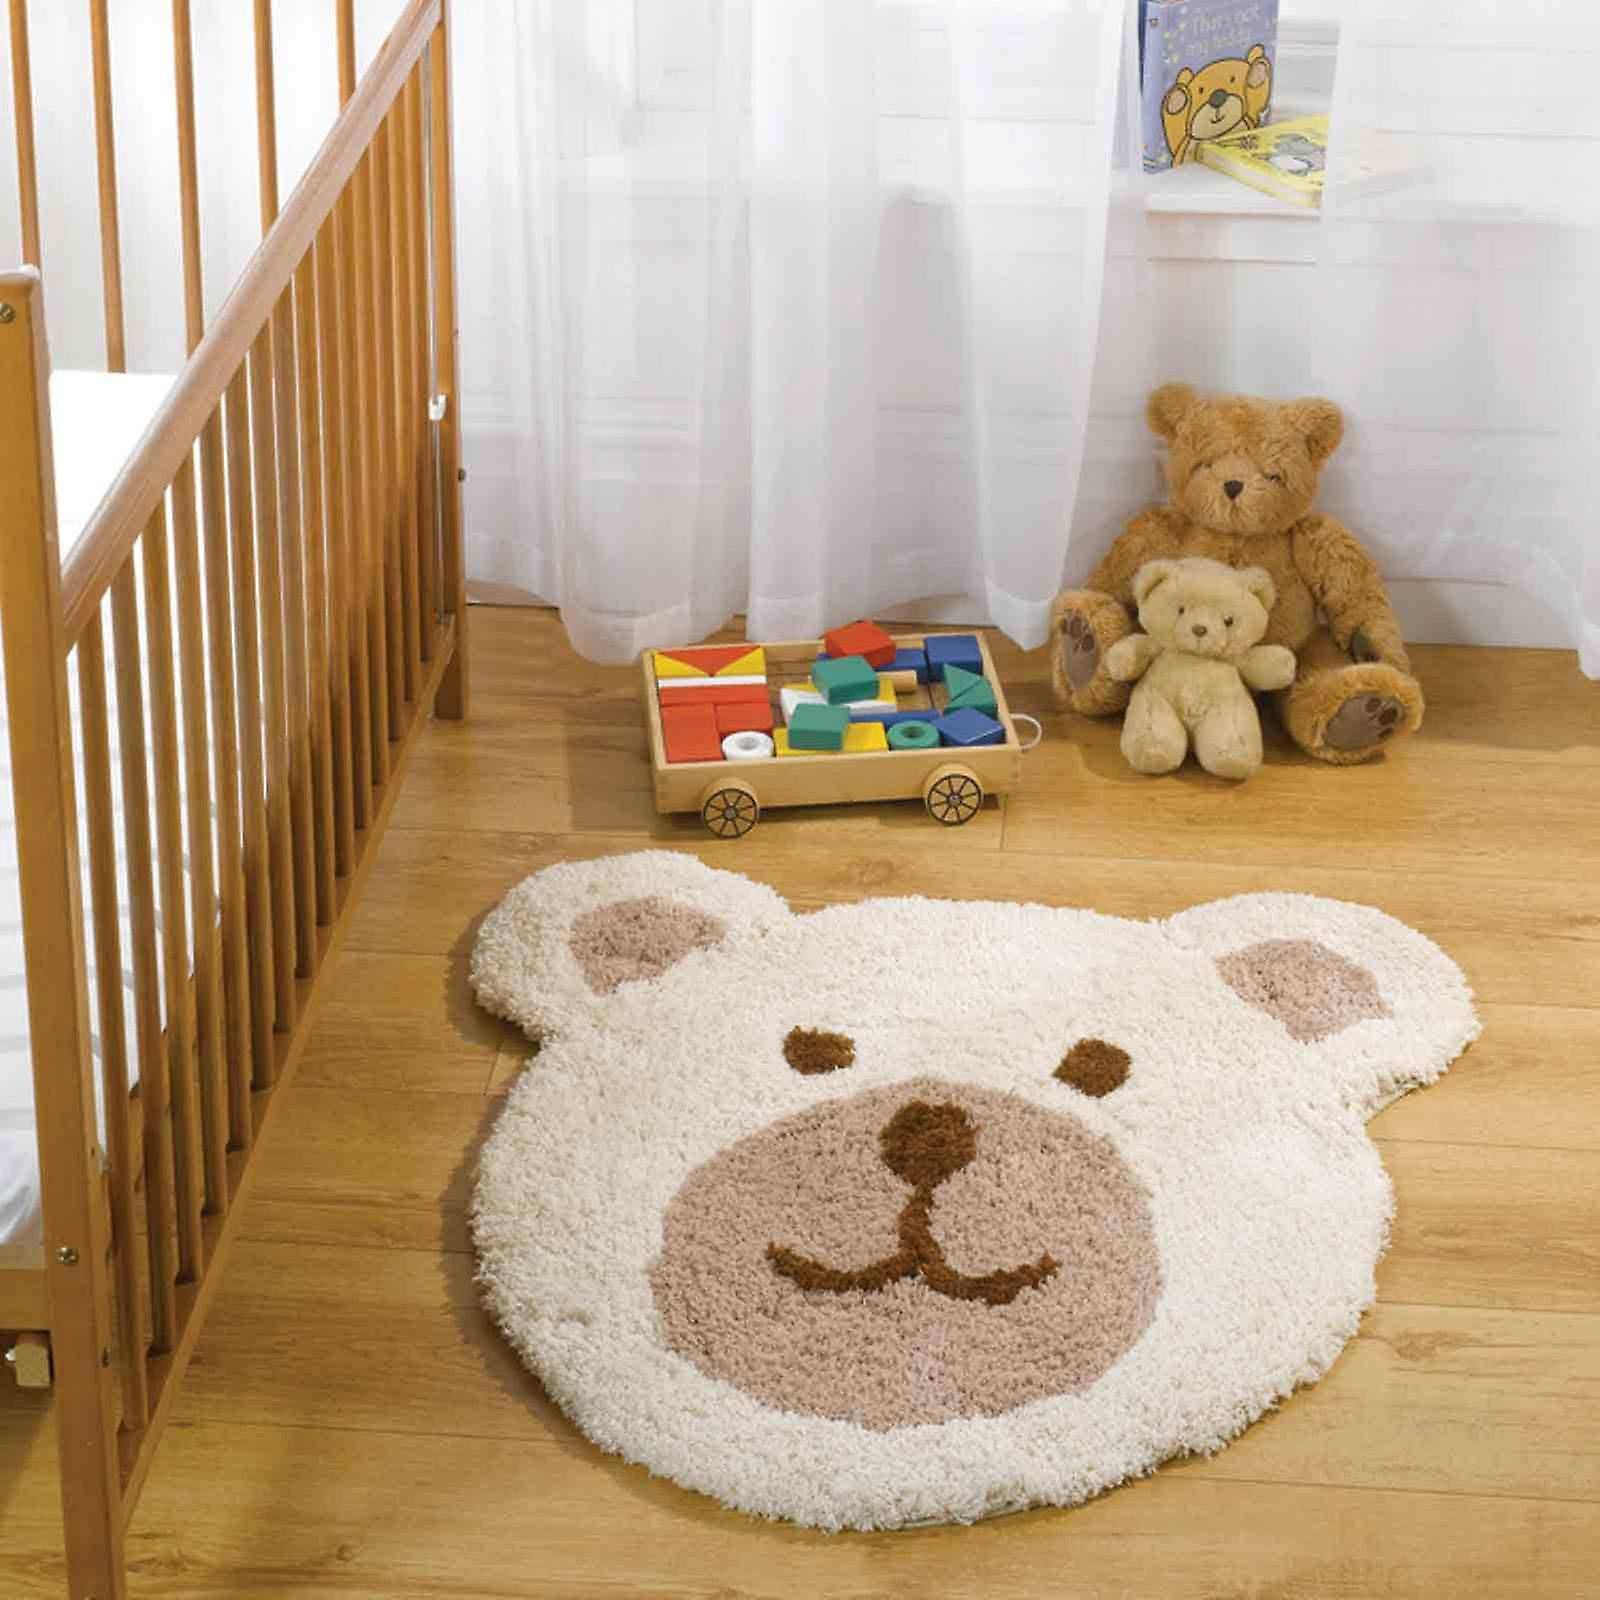 Nursery Teddy Bear Rugs In Natural Fruugo With Teddy Bear Rugs (Image 11 of 15)